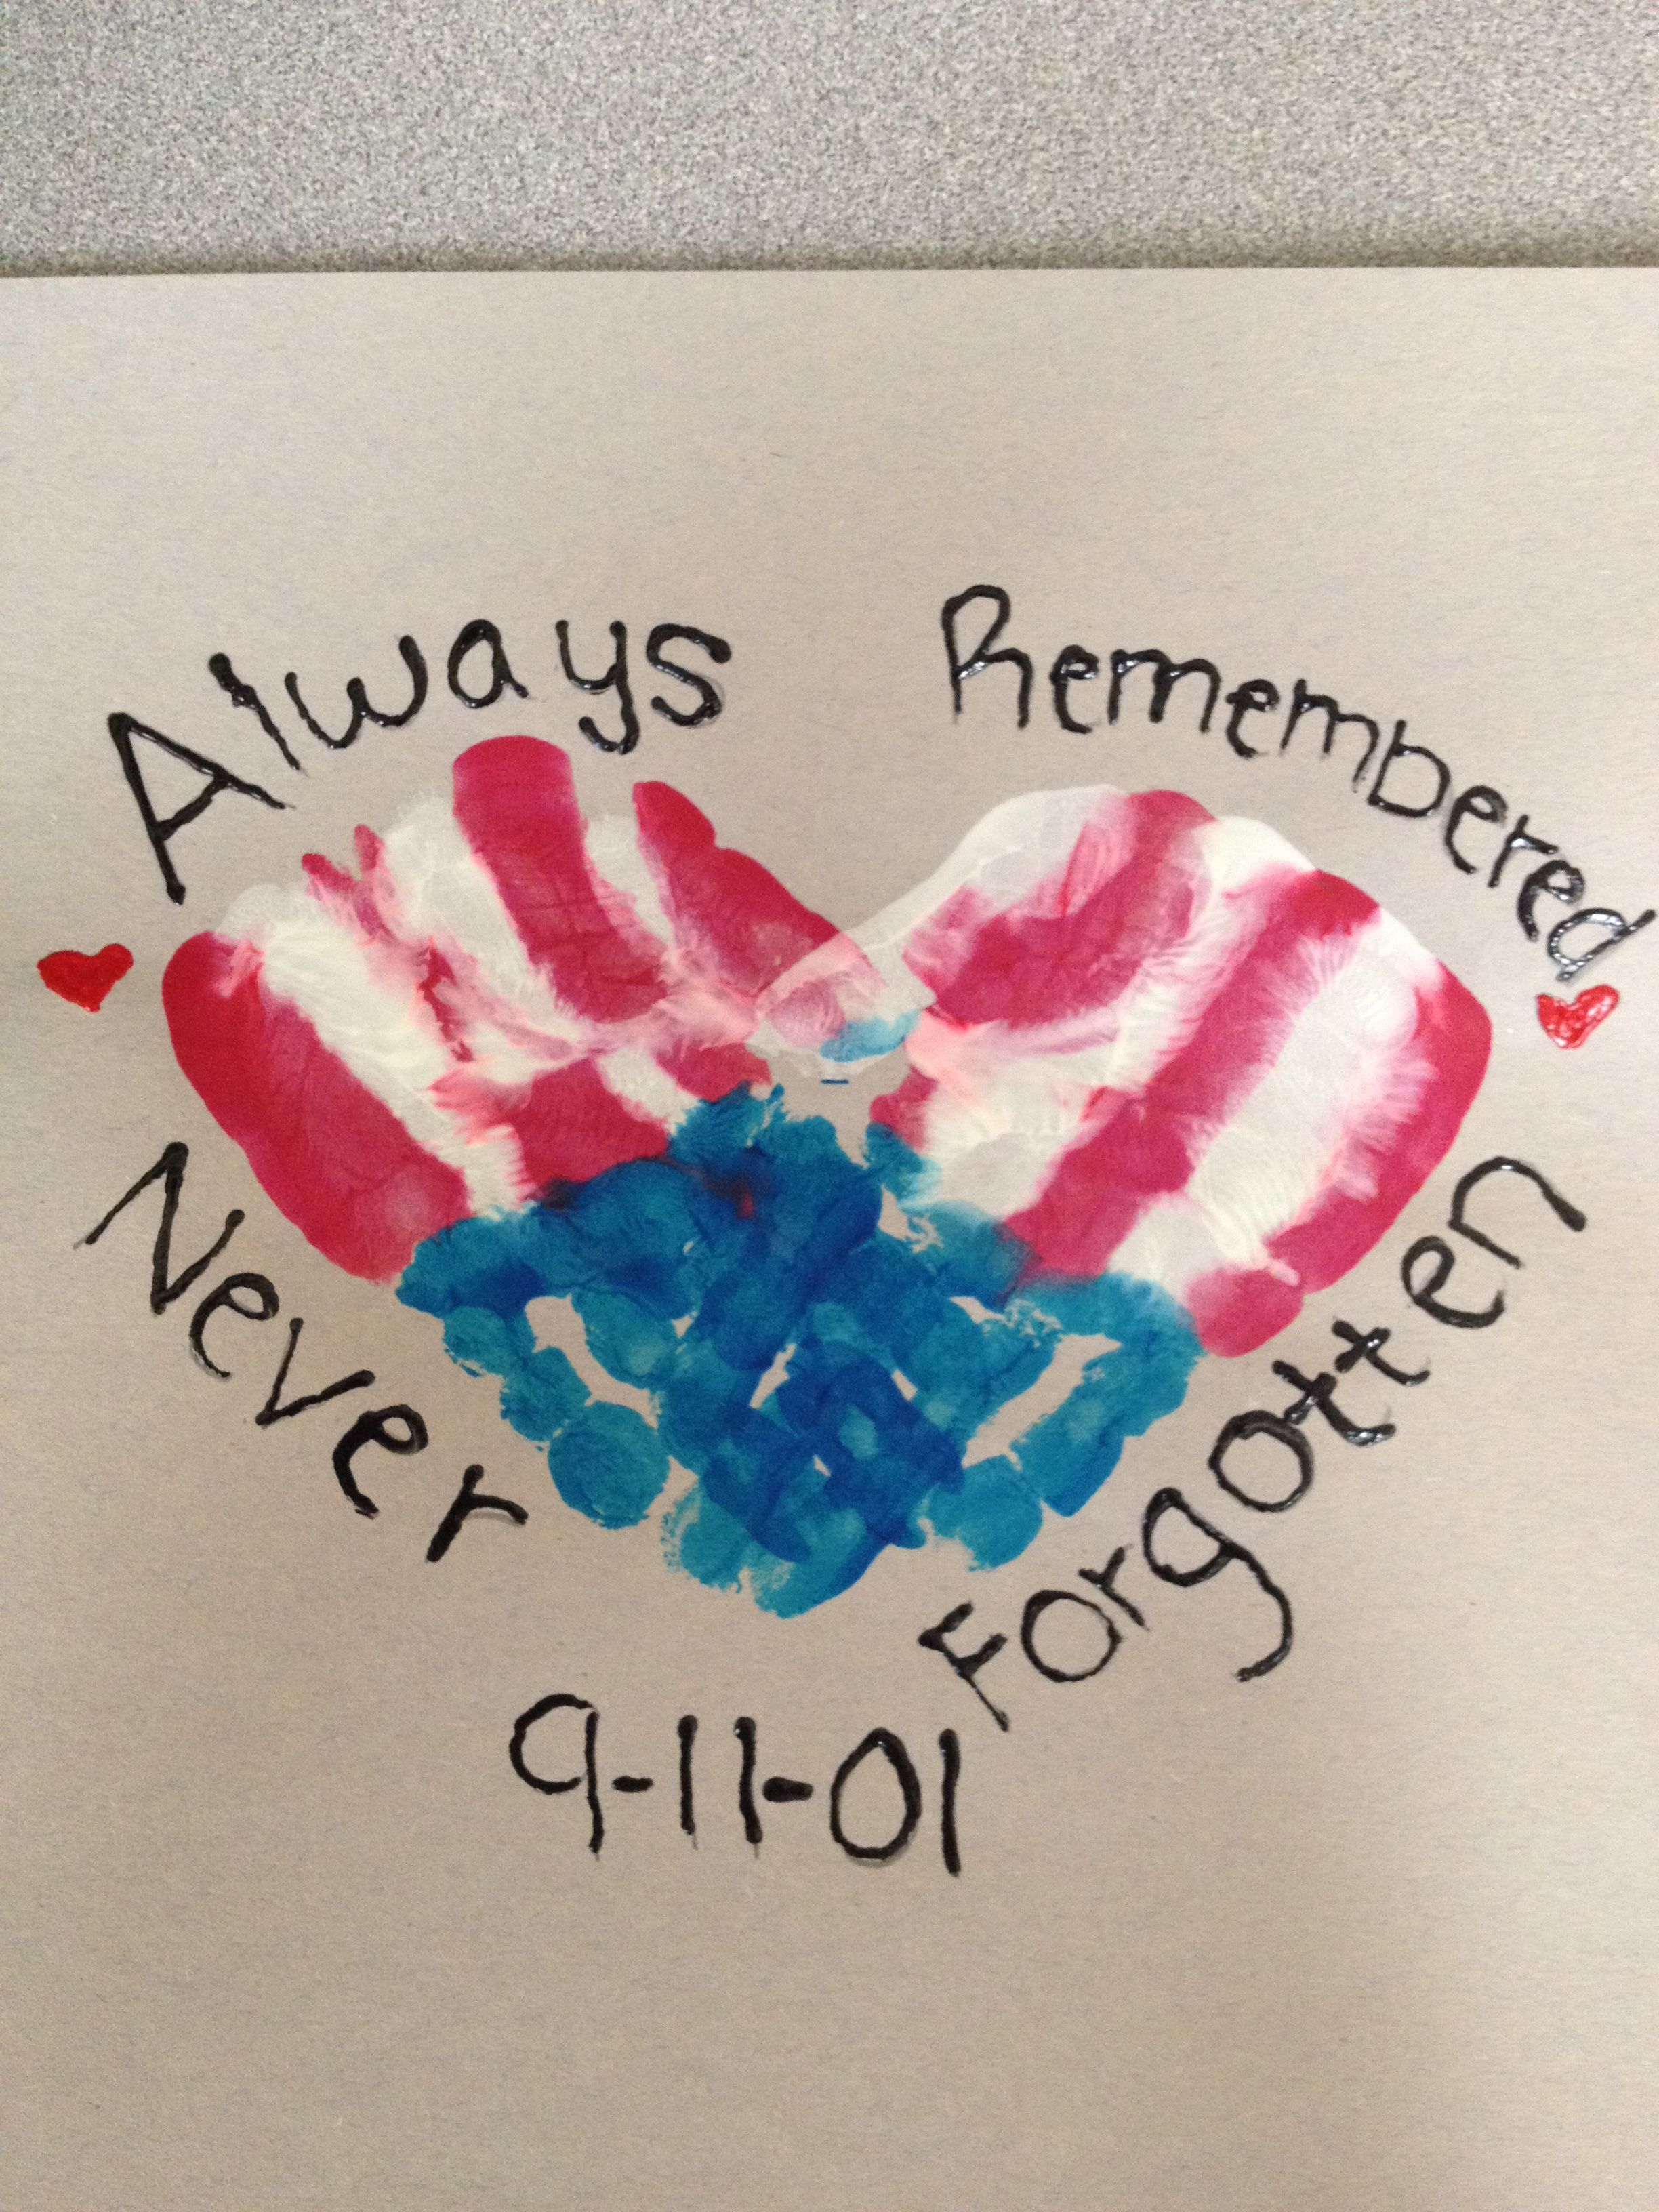 Cute Remembering 9 11 Craft To Do With Kids And Their Hand